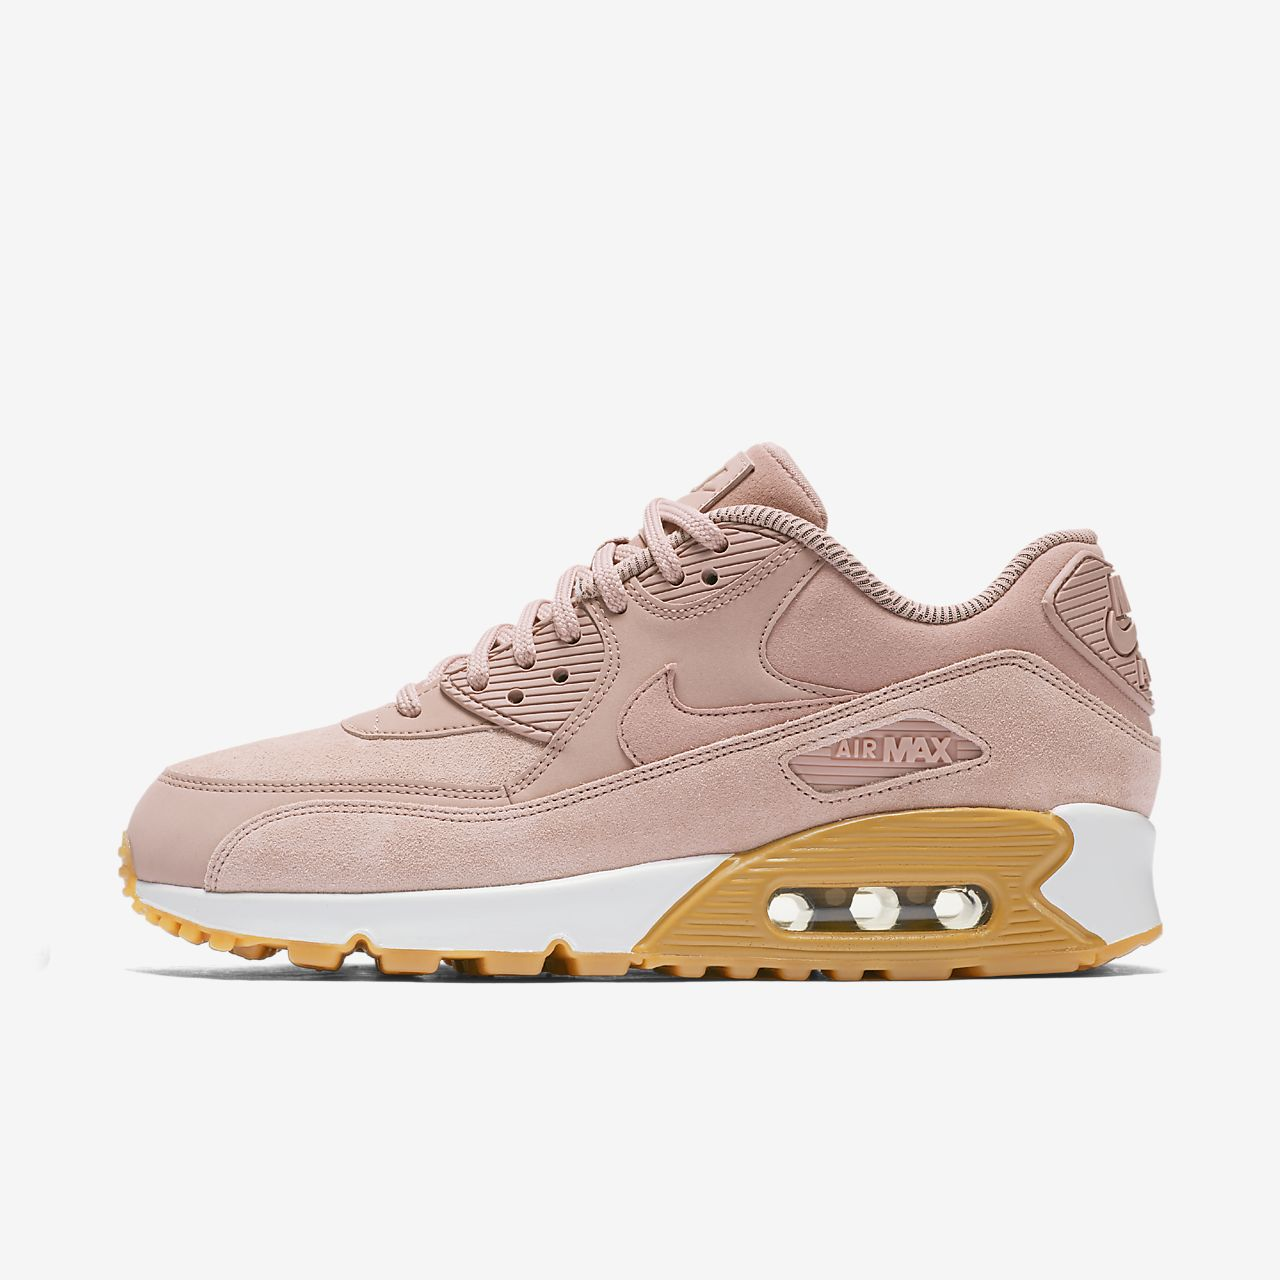 nike air max sneakers for women